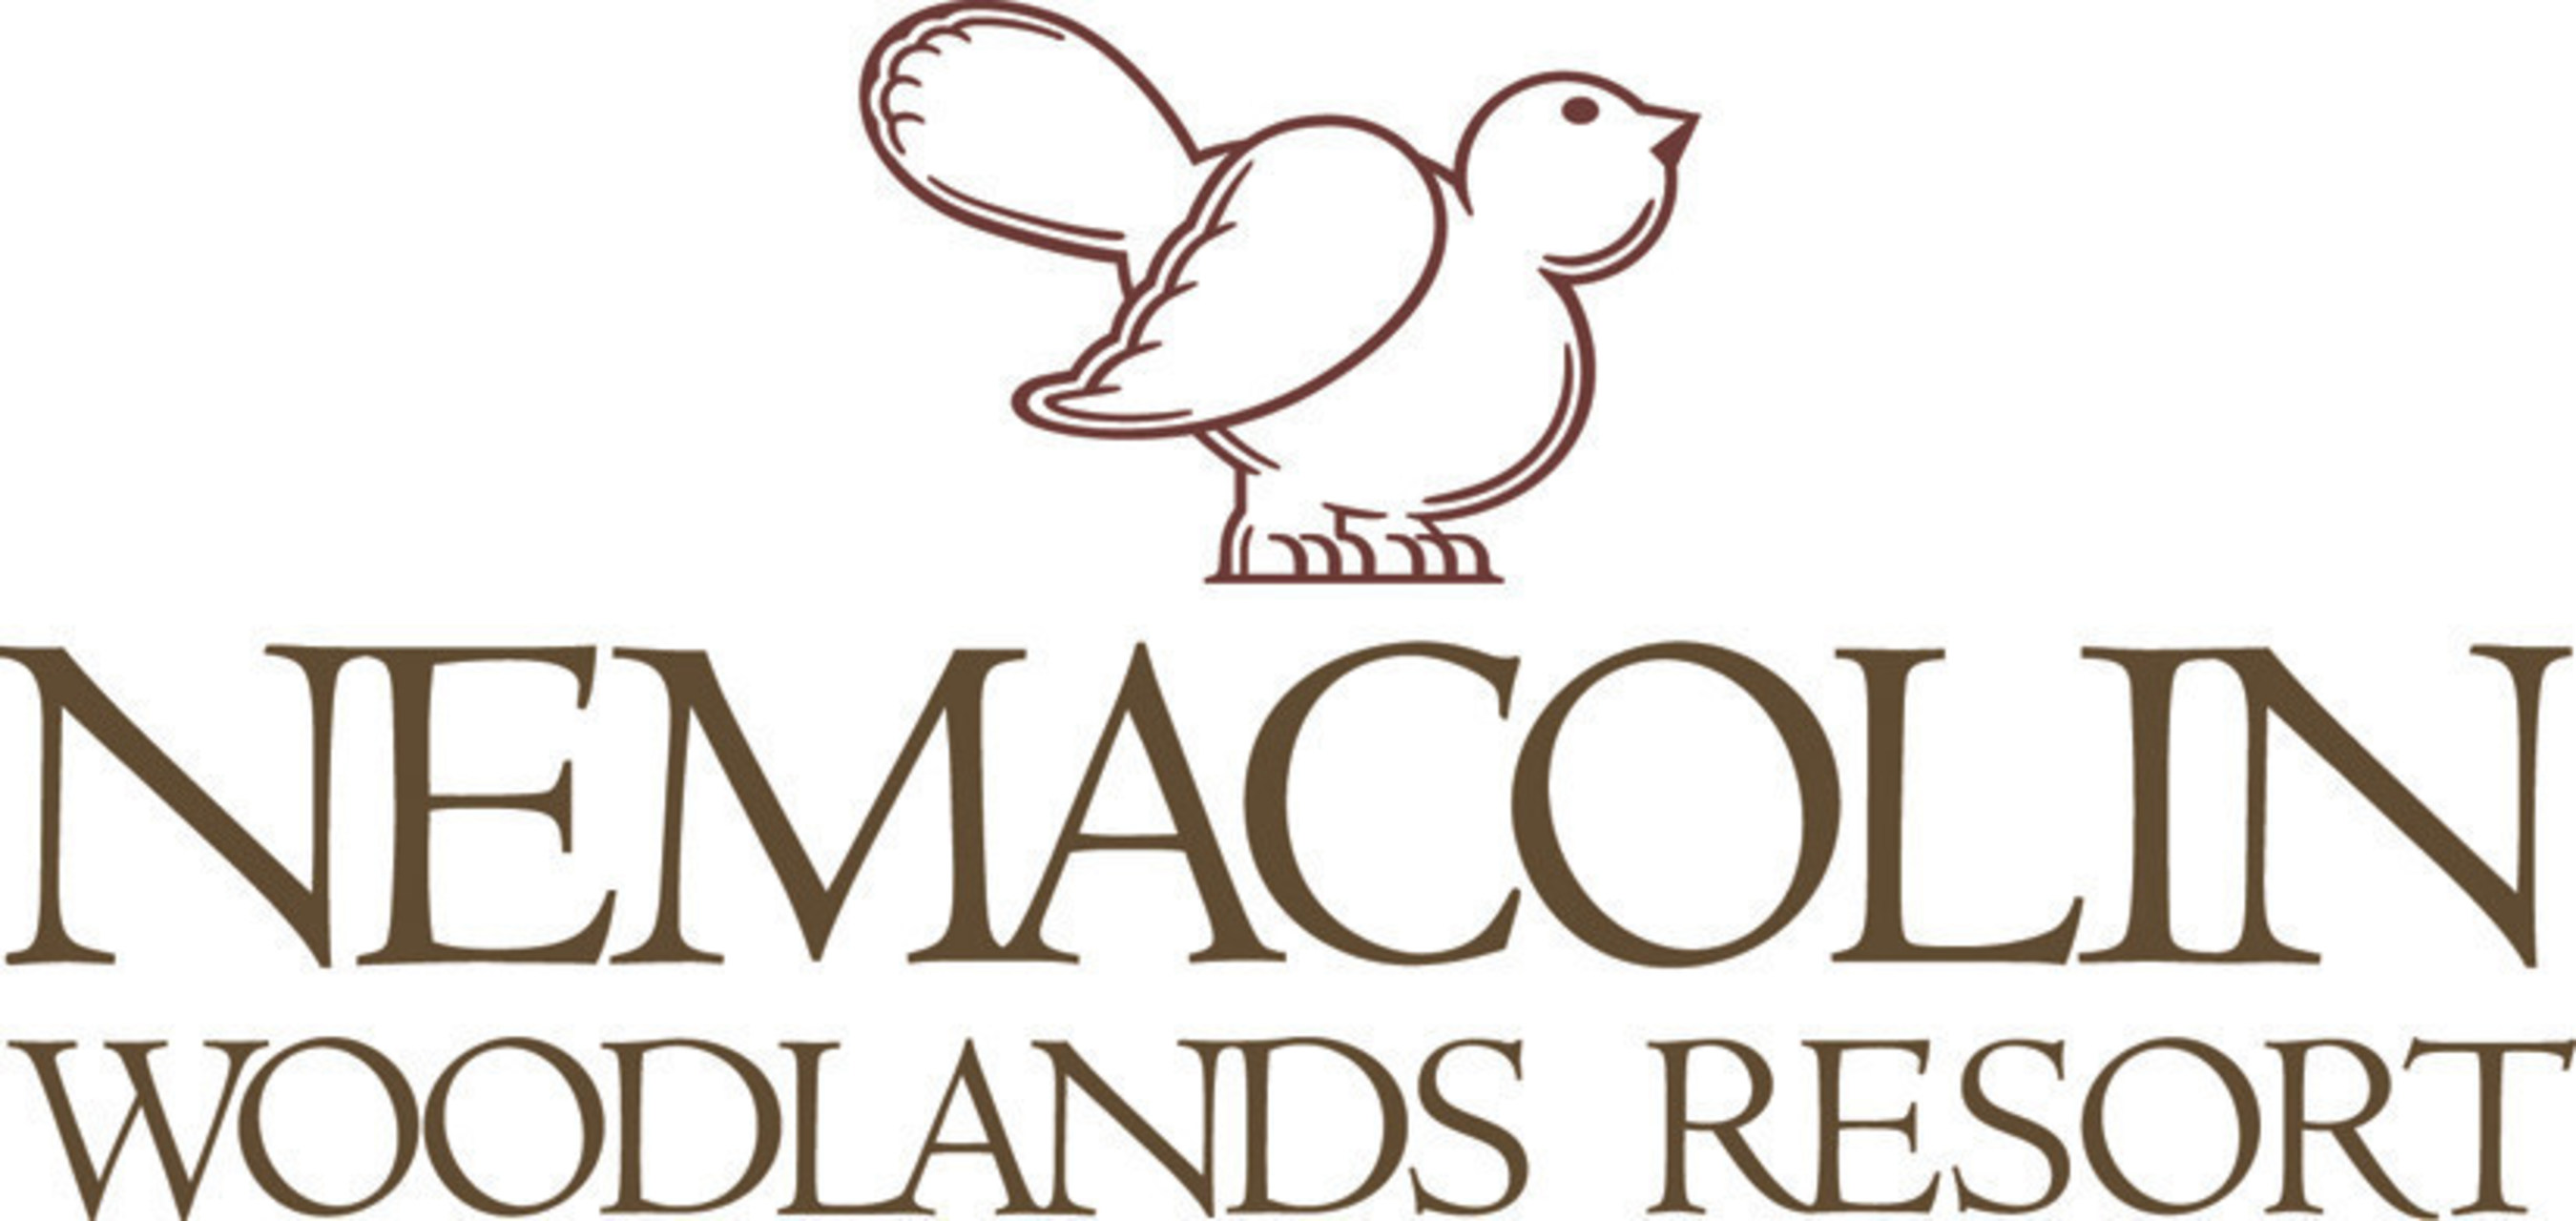 Nemacolin Woodlands Resort today unveiled an additional nine holes expansion plan to their existing 18 hole golf course, Mystic Rock. Both the expansion and existing course were designed by Pete Dye, legendary golf course designer and architect.